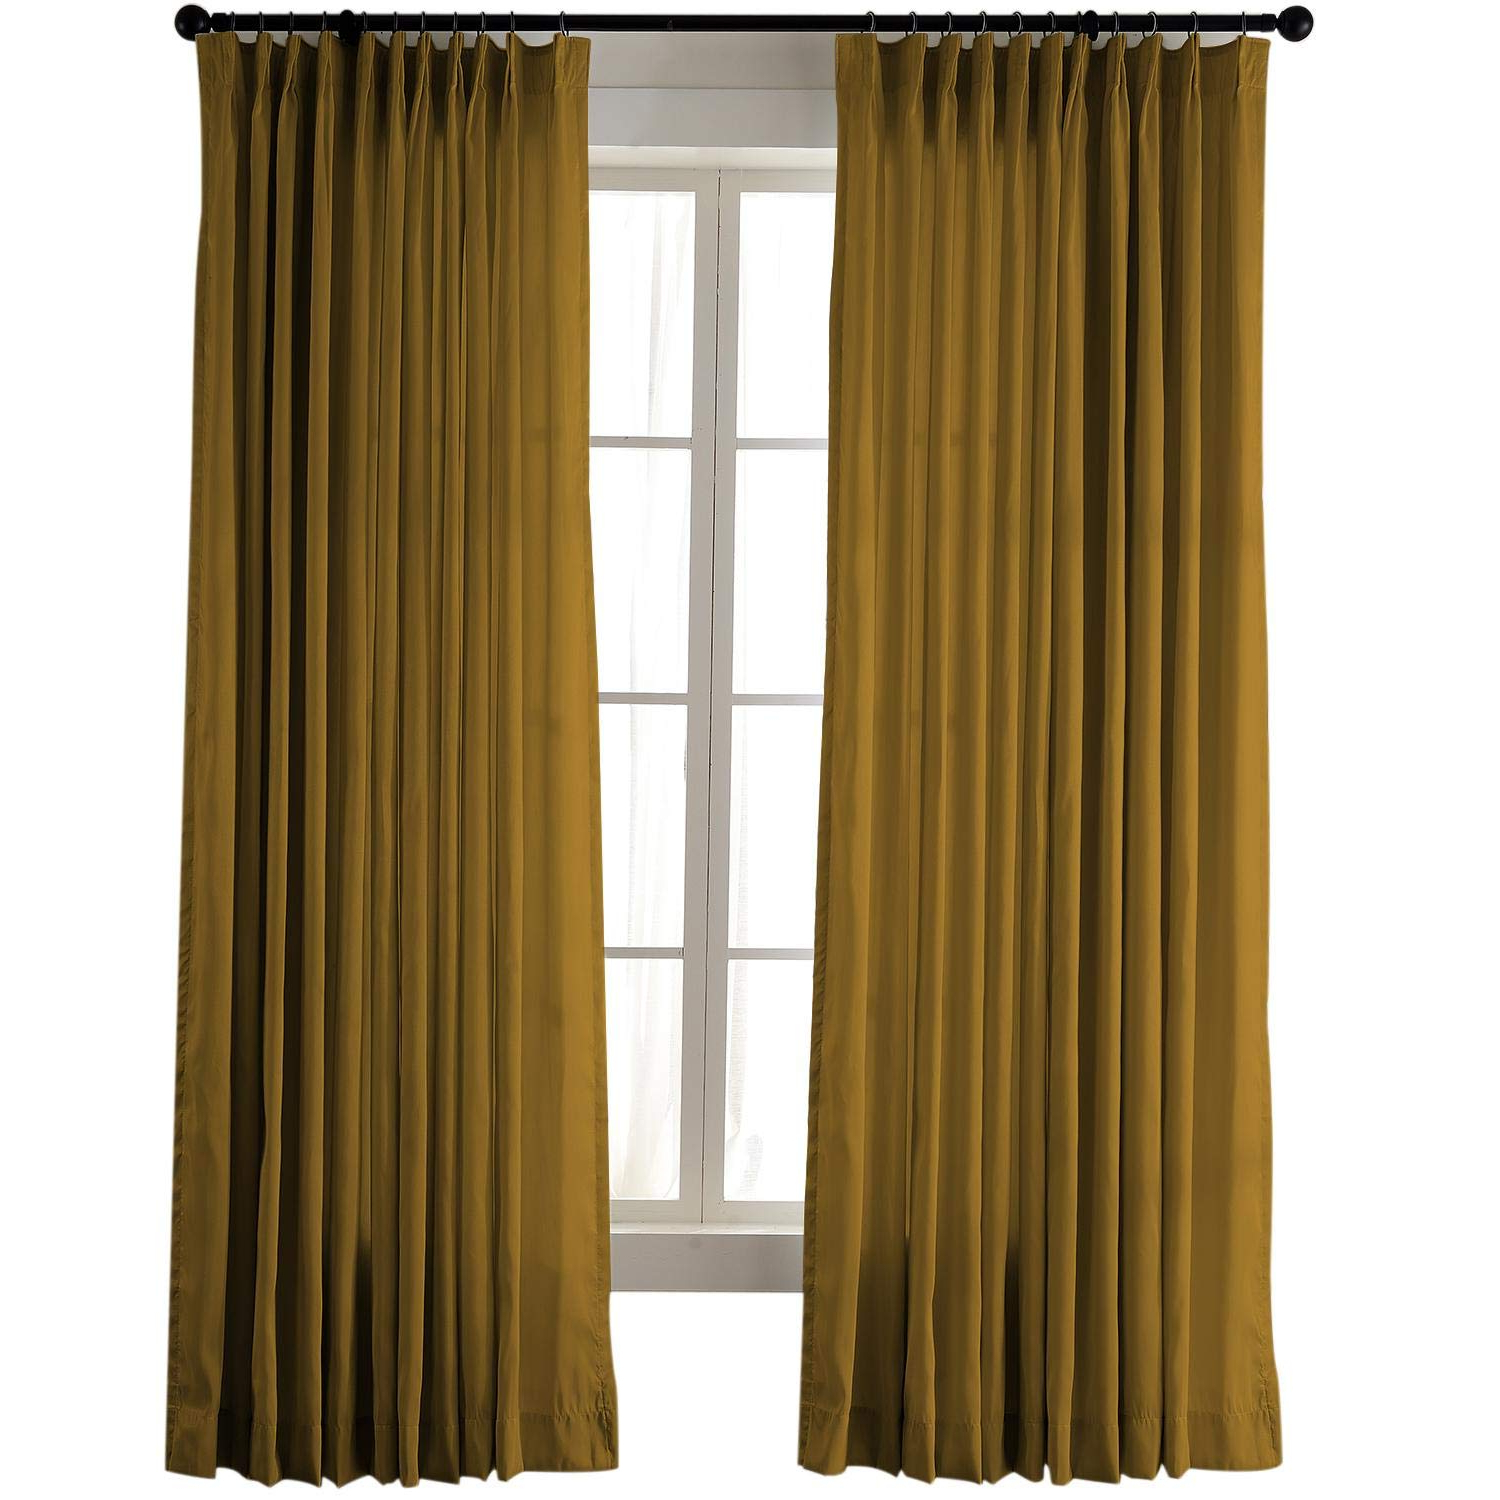 Amazon: Chadmade Vintage Textured Extra Wide Faux Regarding Popular Vintage Faux Textured Dupioni Silk Curtain Panels (View 10 of 20)